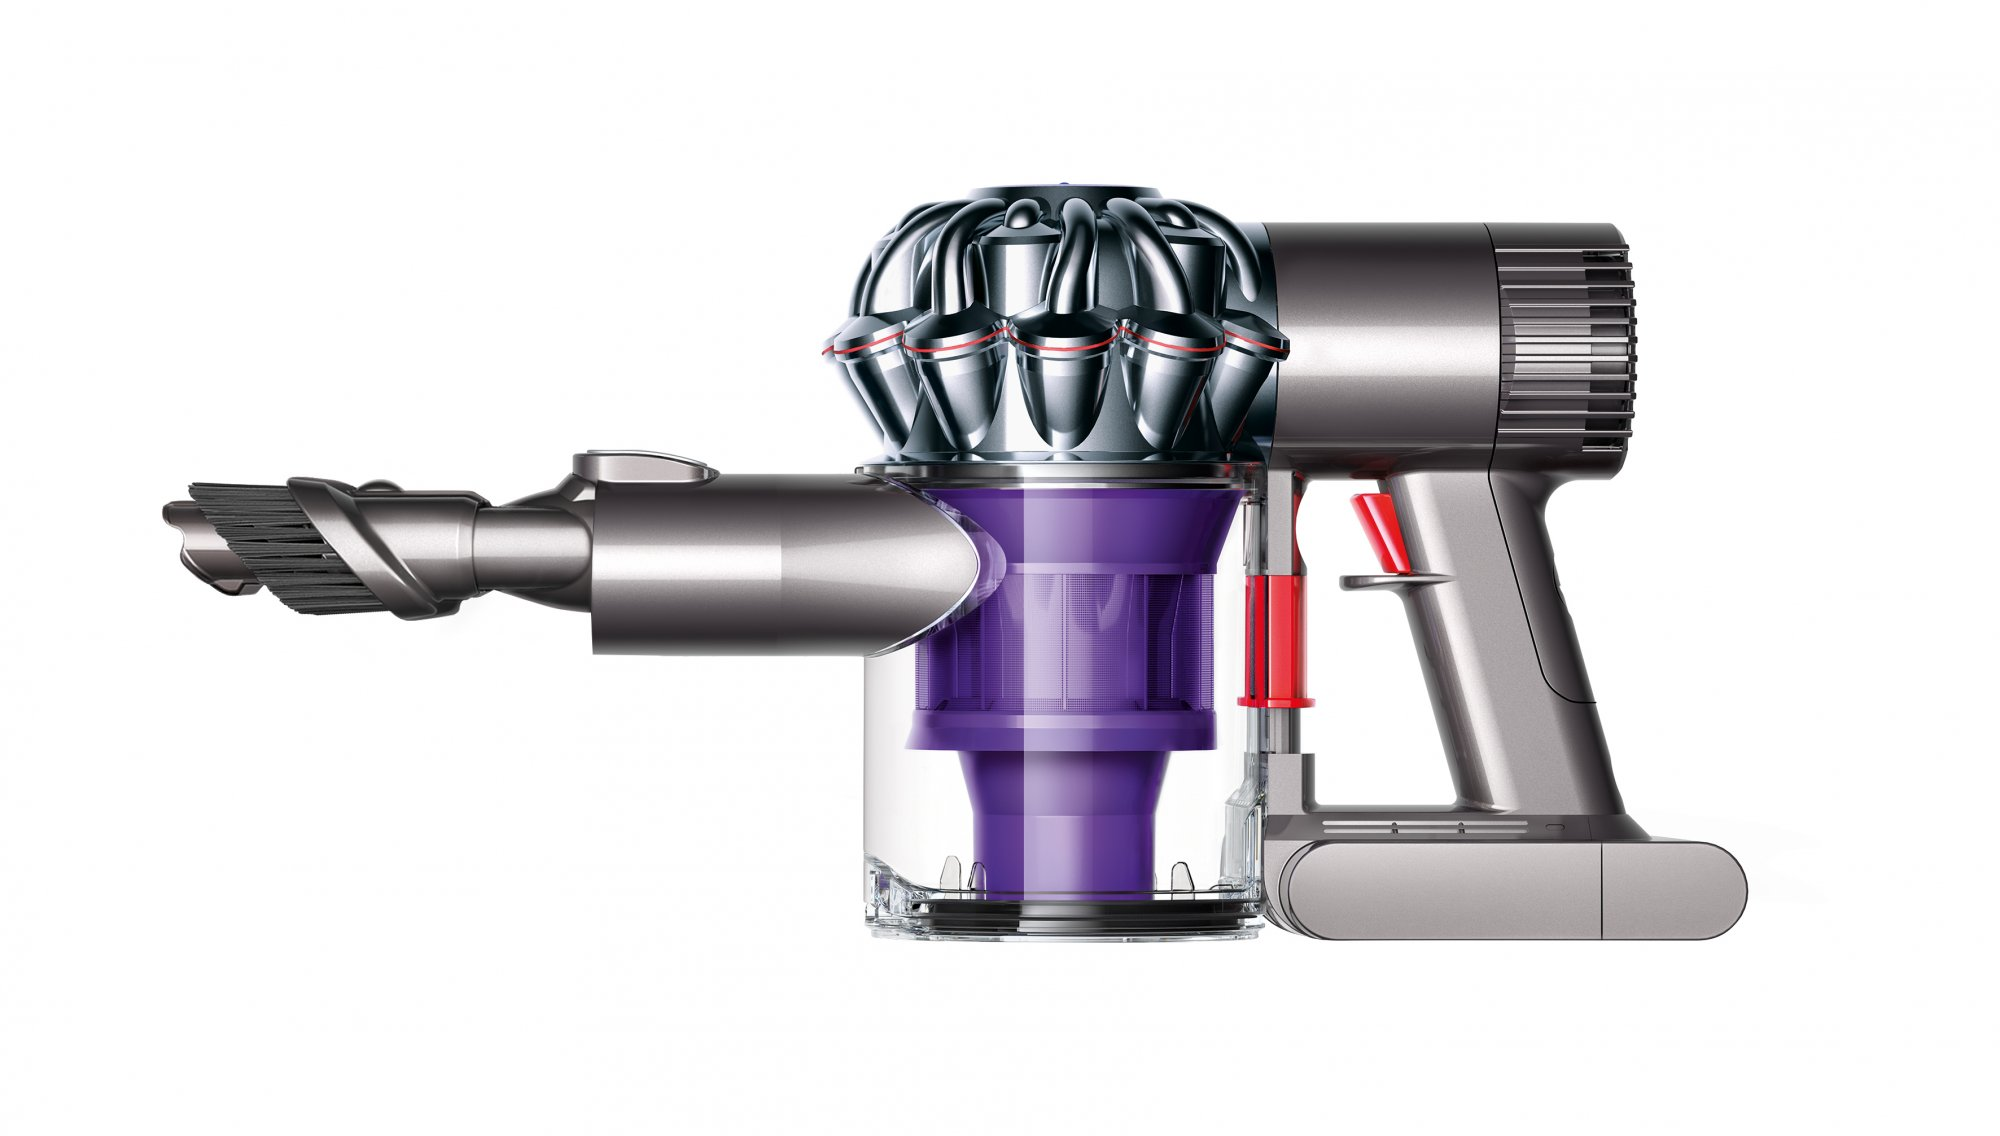 dyson v6 trigger handheld vacuum cleaner v6trigger 885609001920. Black Bedroom Furniture Sets. Home Design Ideas